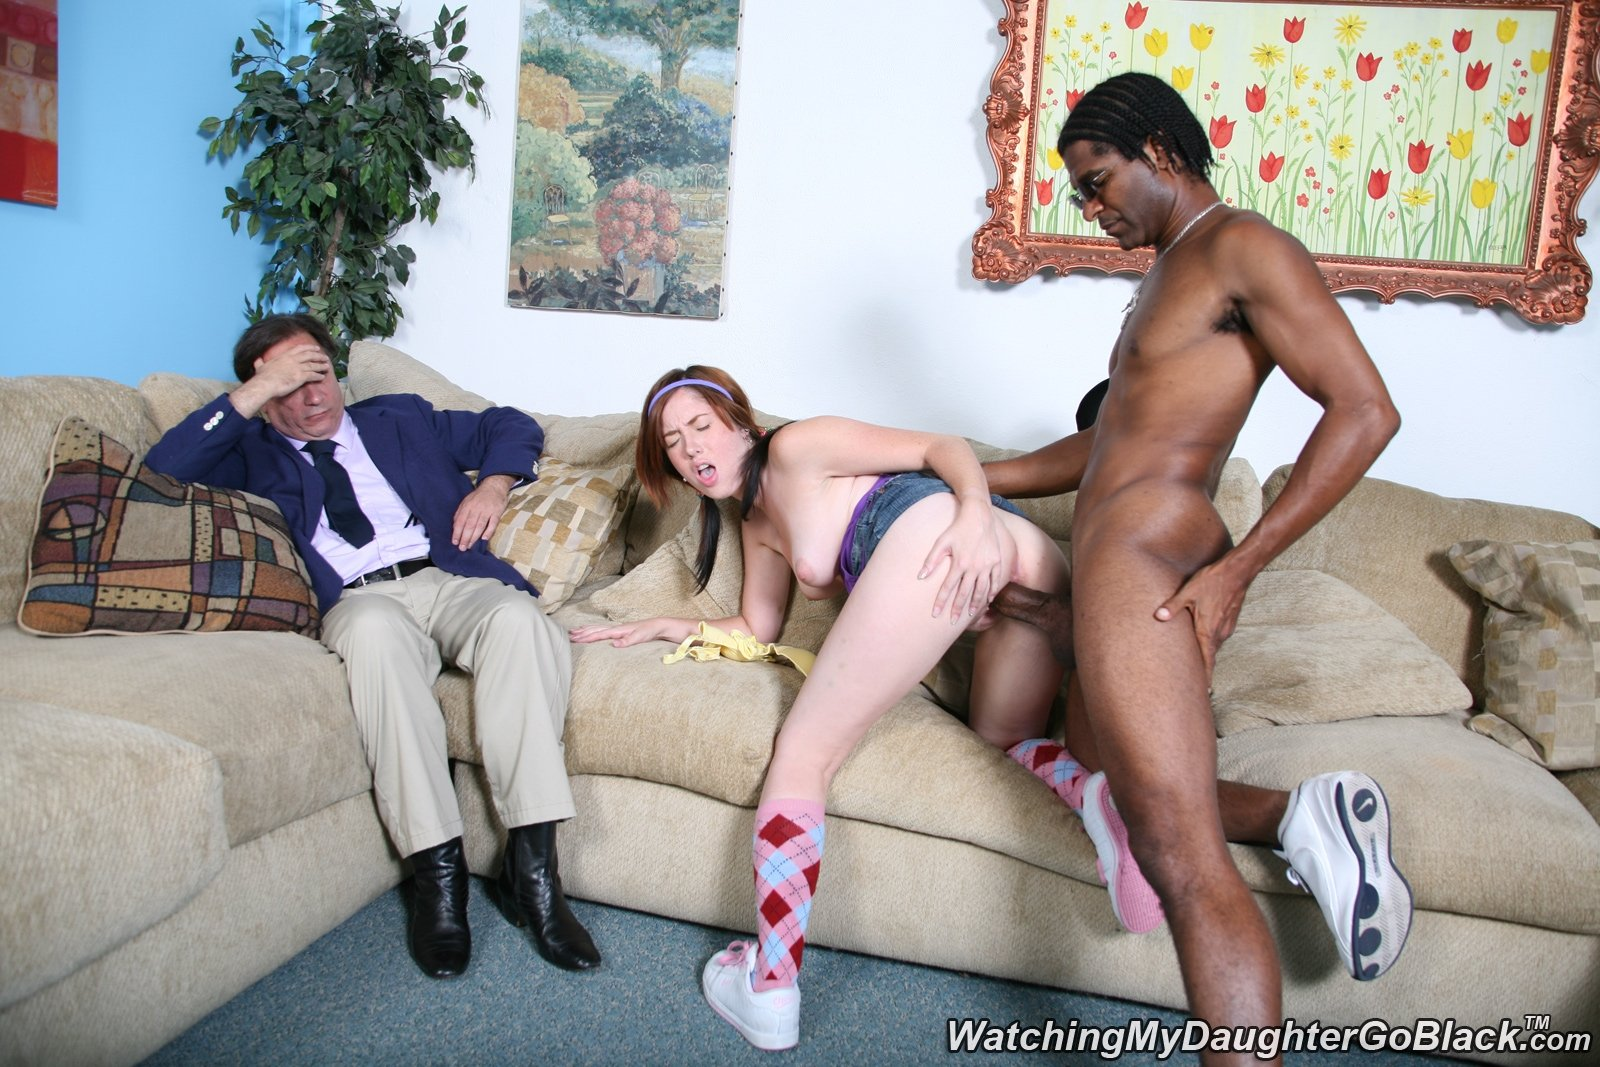 Unwilling Wife Forced To Pay Husbands Debt Porn Pics Blonde Fucks To Pay Her Debt